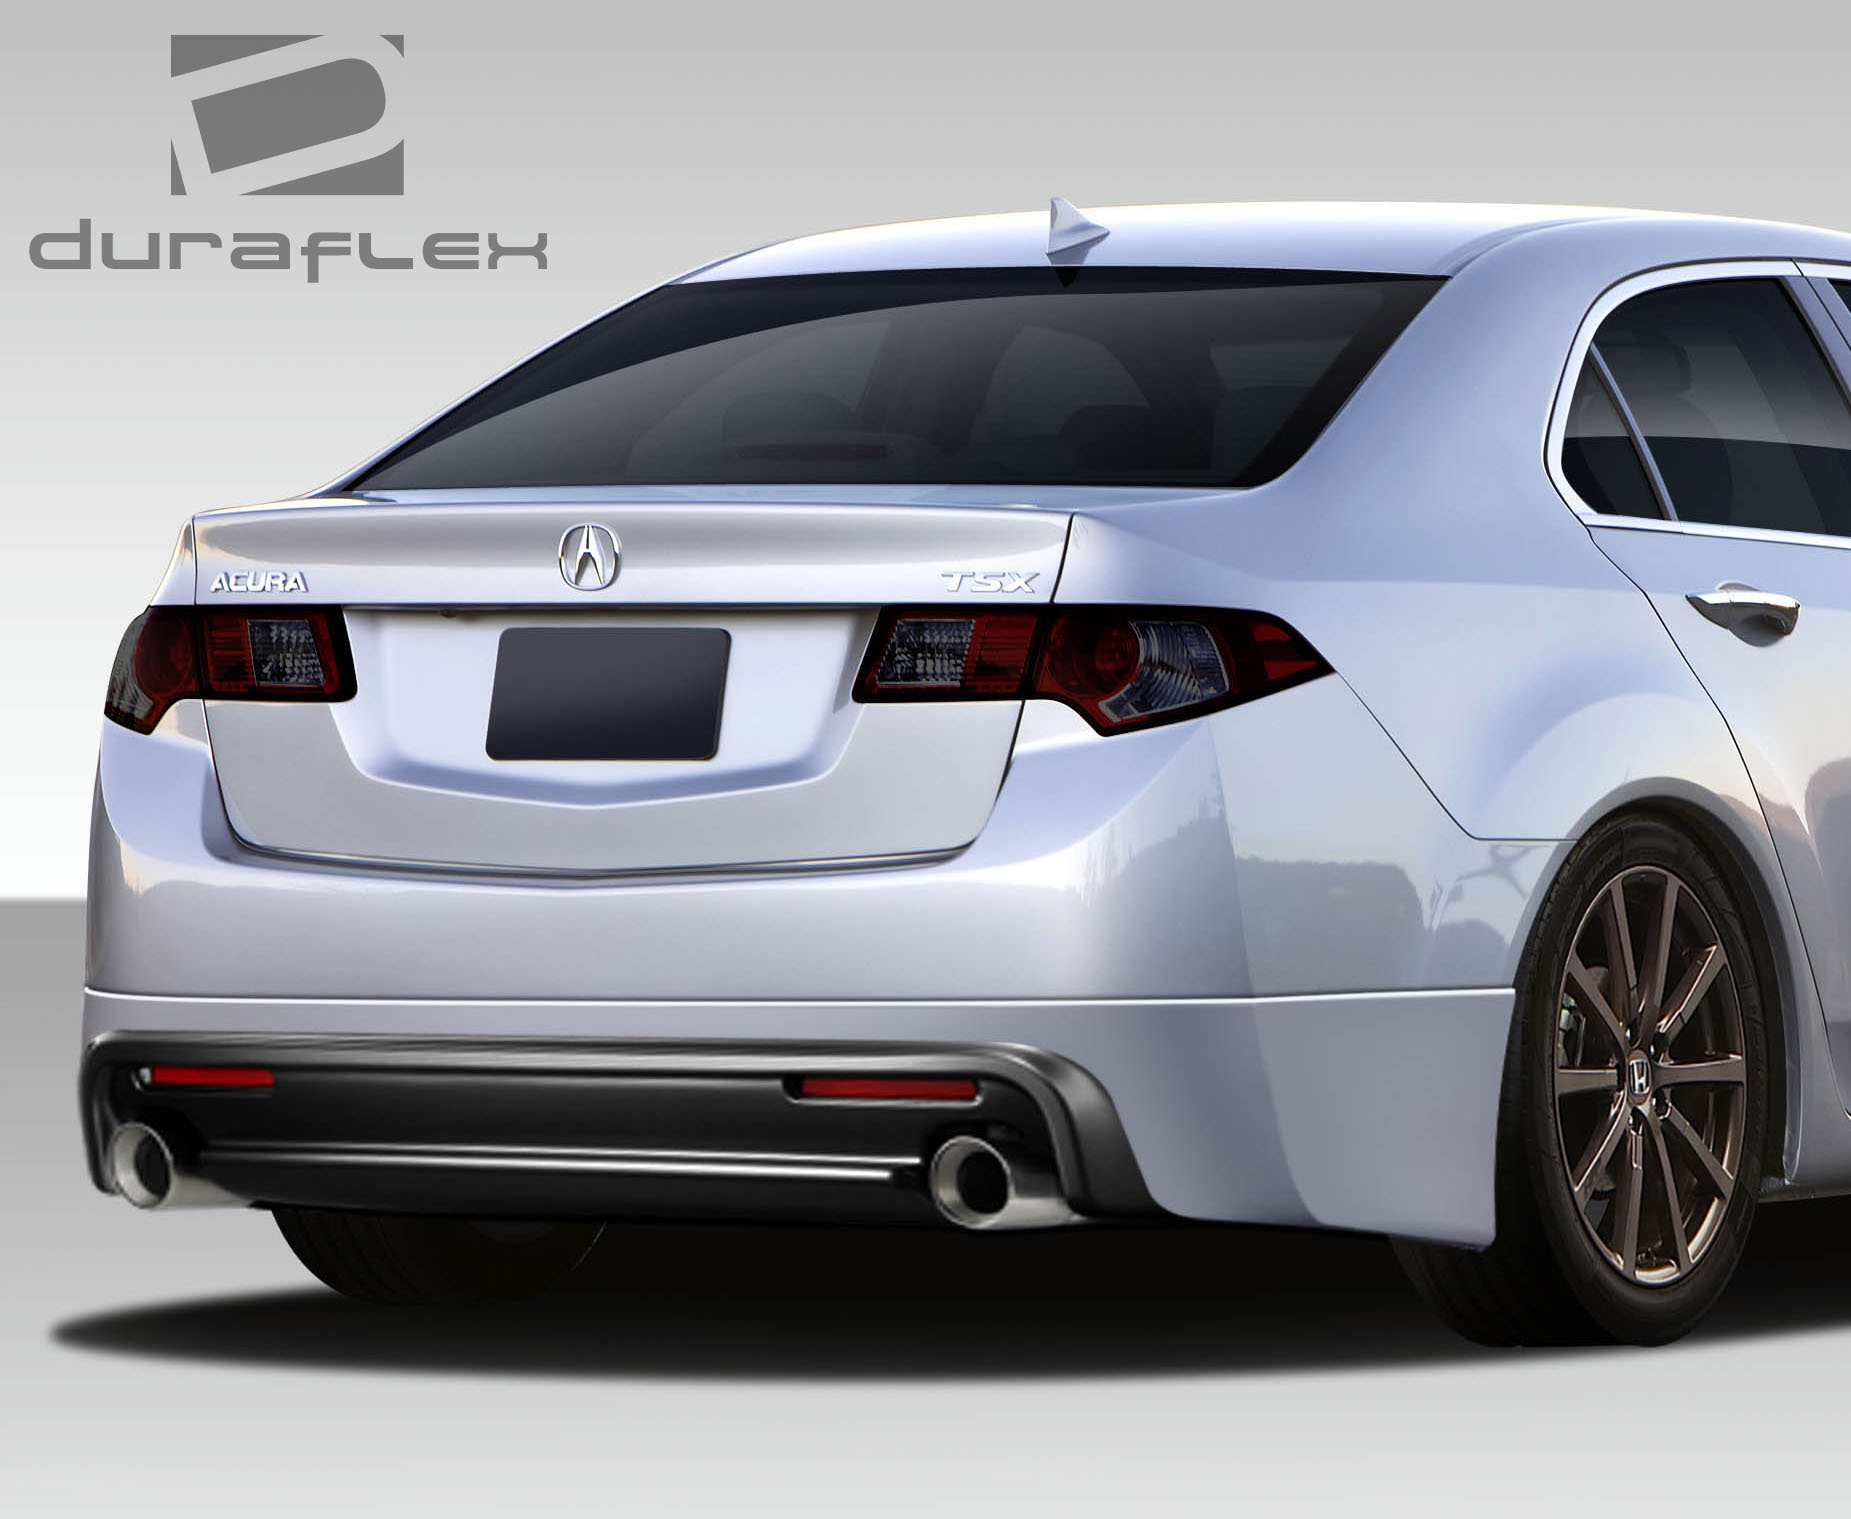 Lovely 2009 acura tsx lip kit mipgt 09 14 acura tsx type m duraflex rear bumper lip body kit sciox Images